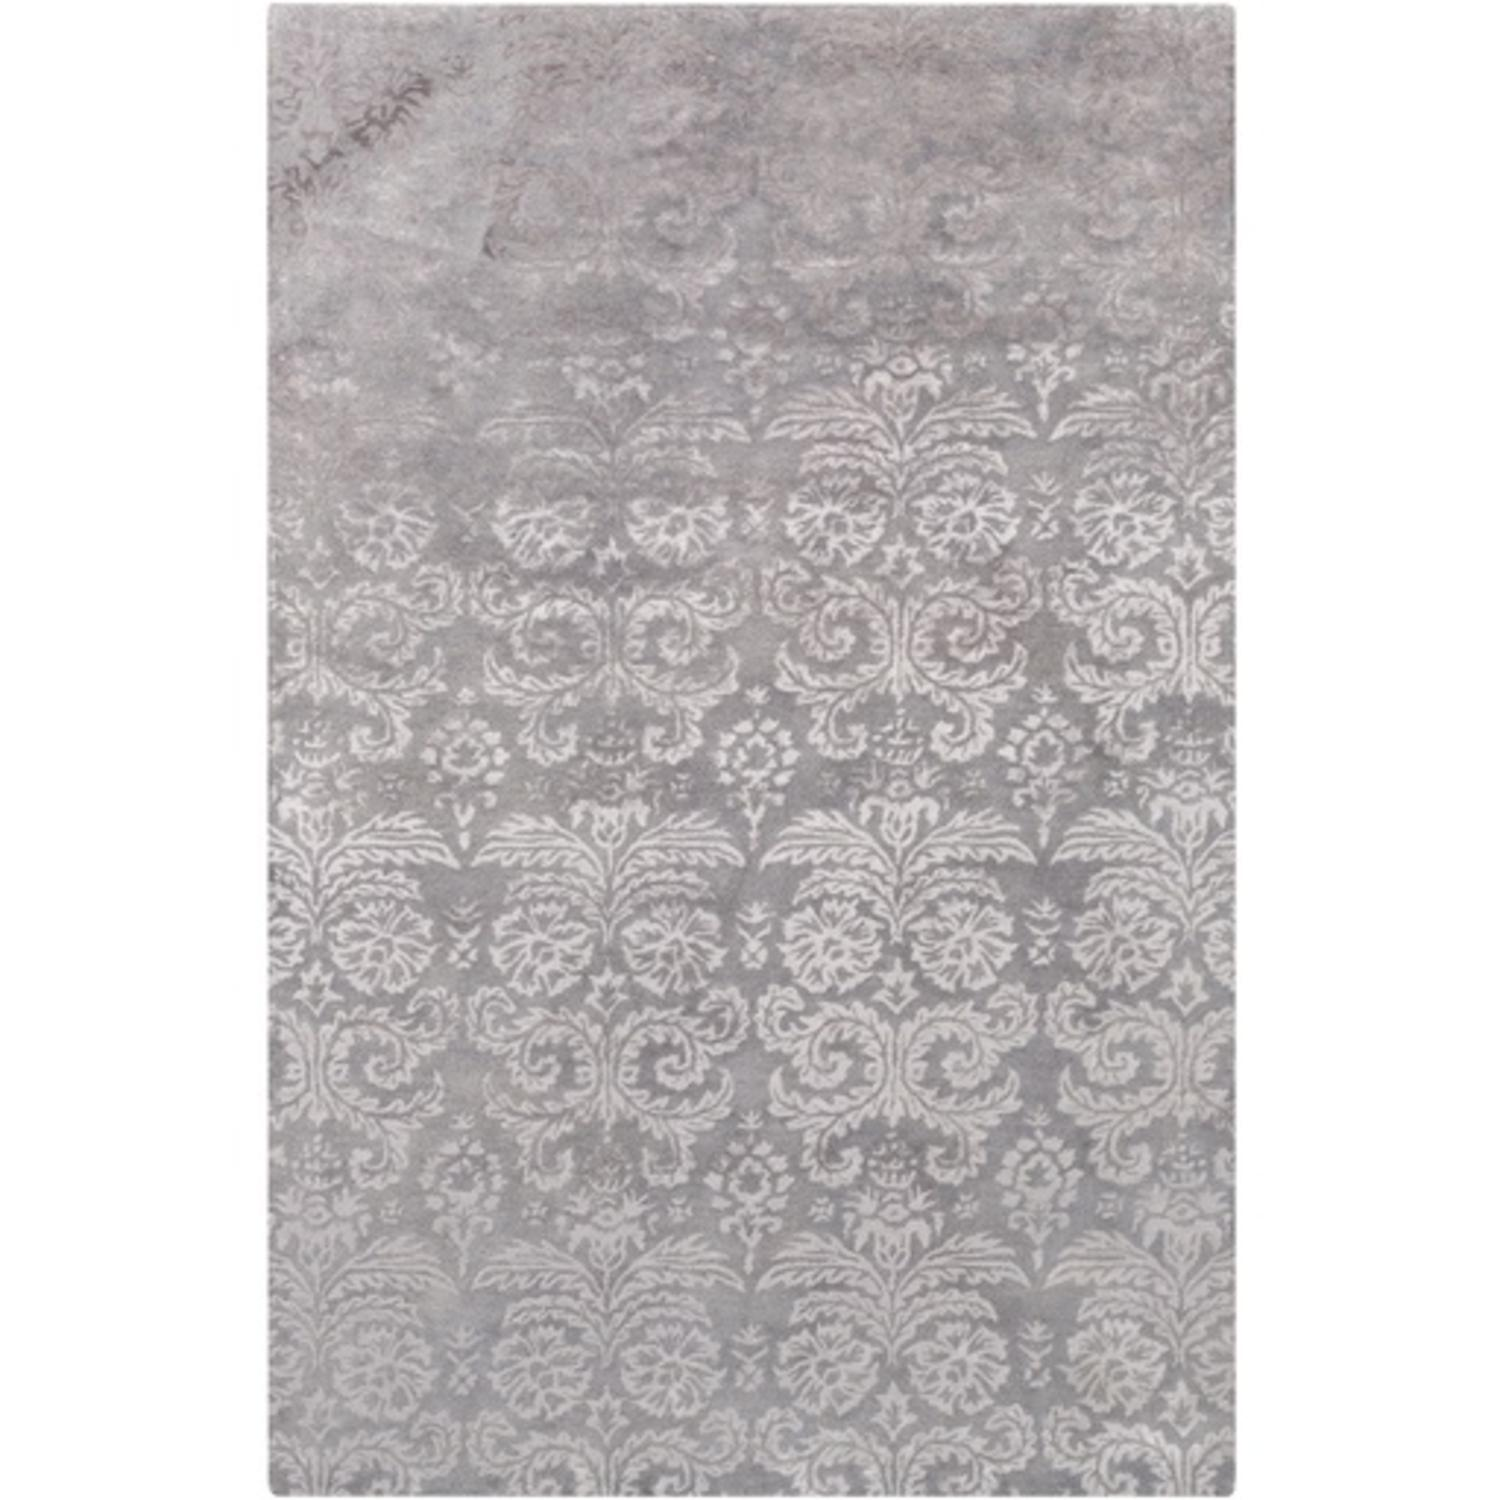 4' x 6' Filigree Fantasies Pewter Gray Hand Tufted Area Throw Rug